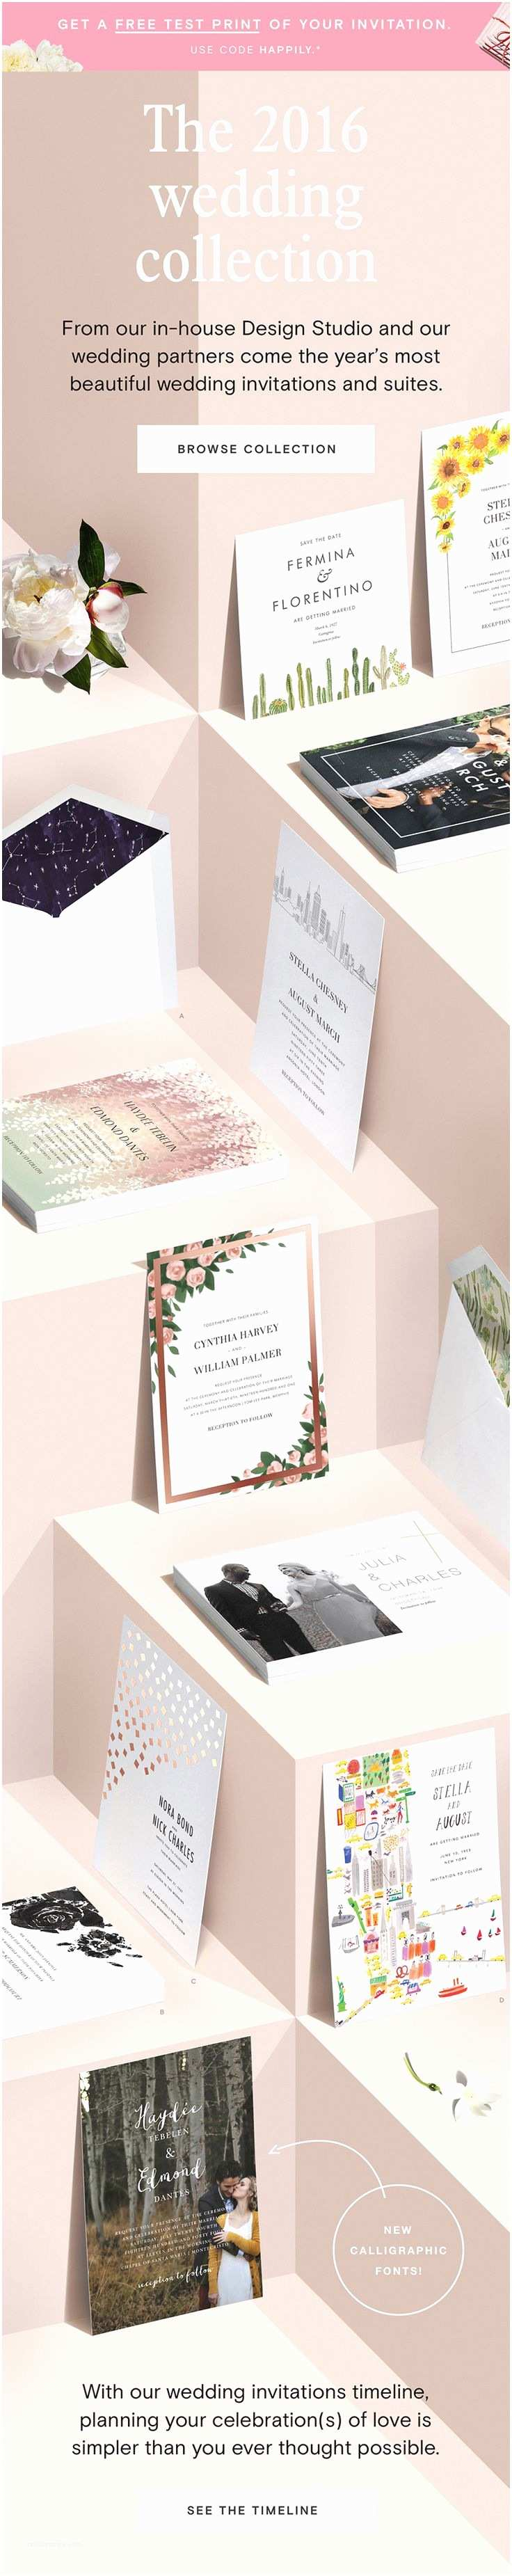 The Most Beautiful Wedding Invitations top 25 Best Creative Email Signatures Ideas On Pinterest